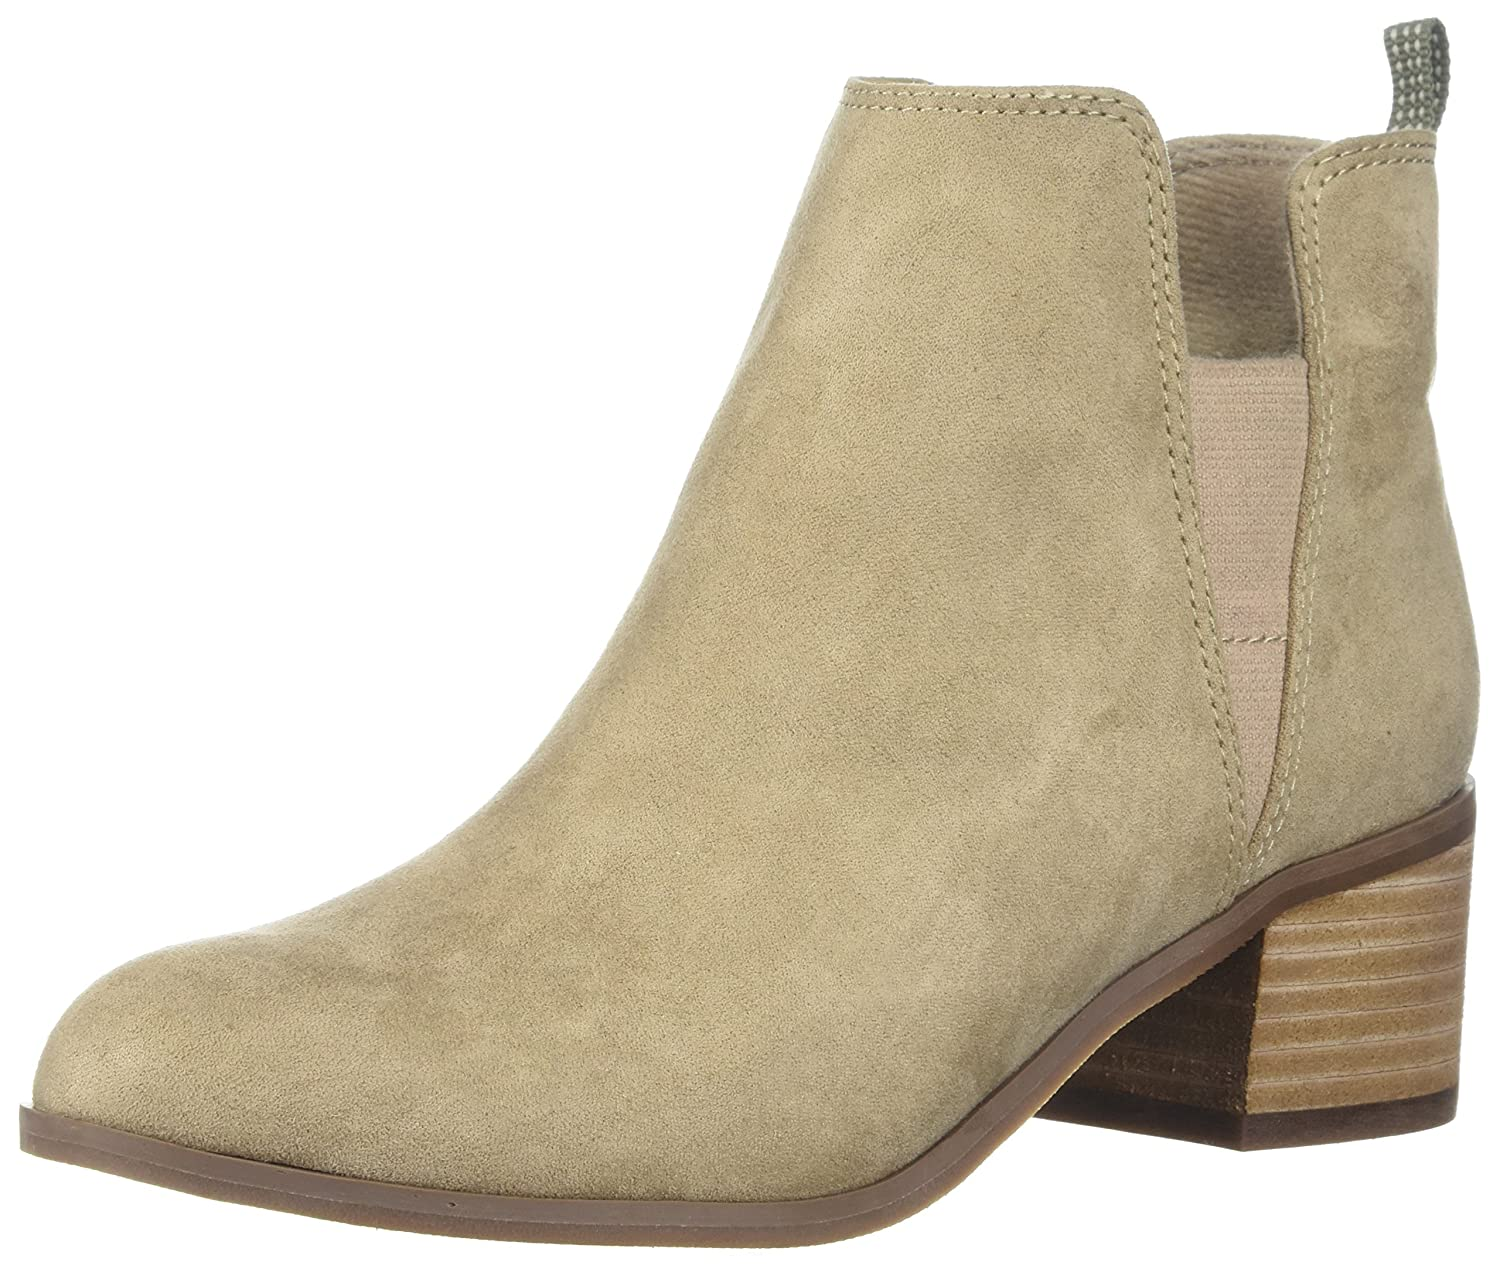 Dr. Scholl's Shoes Women's Addition Ankle Boot B075Y8SPQZ 9.5 B(M) US|Putty Microfiber